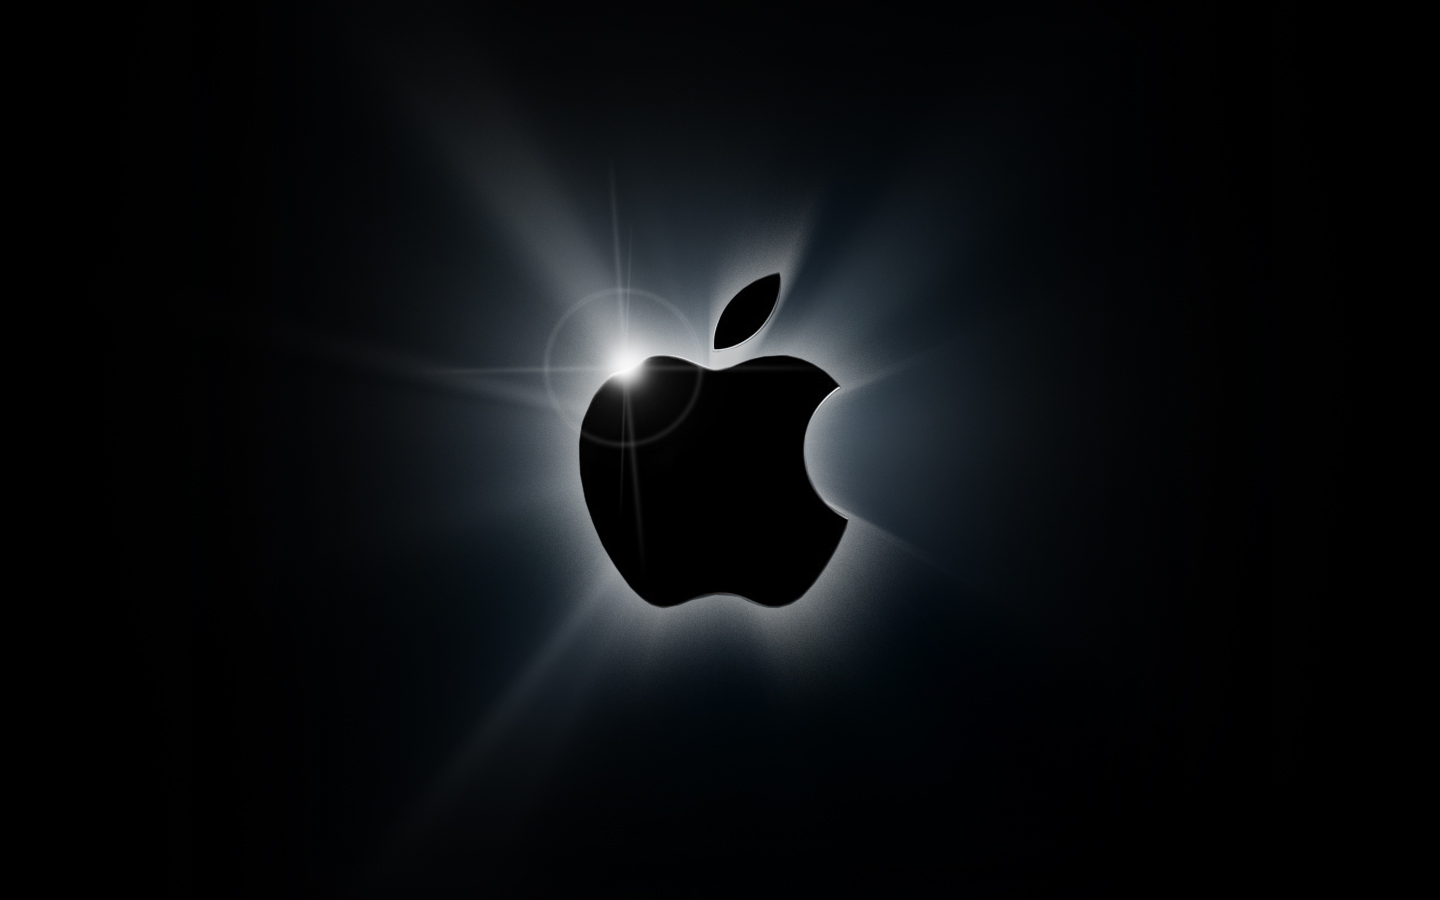 apple black logo wallpaper   iPhone Italia Blog 1440x900